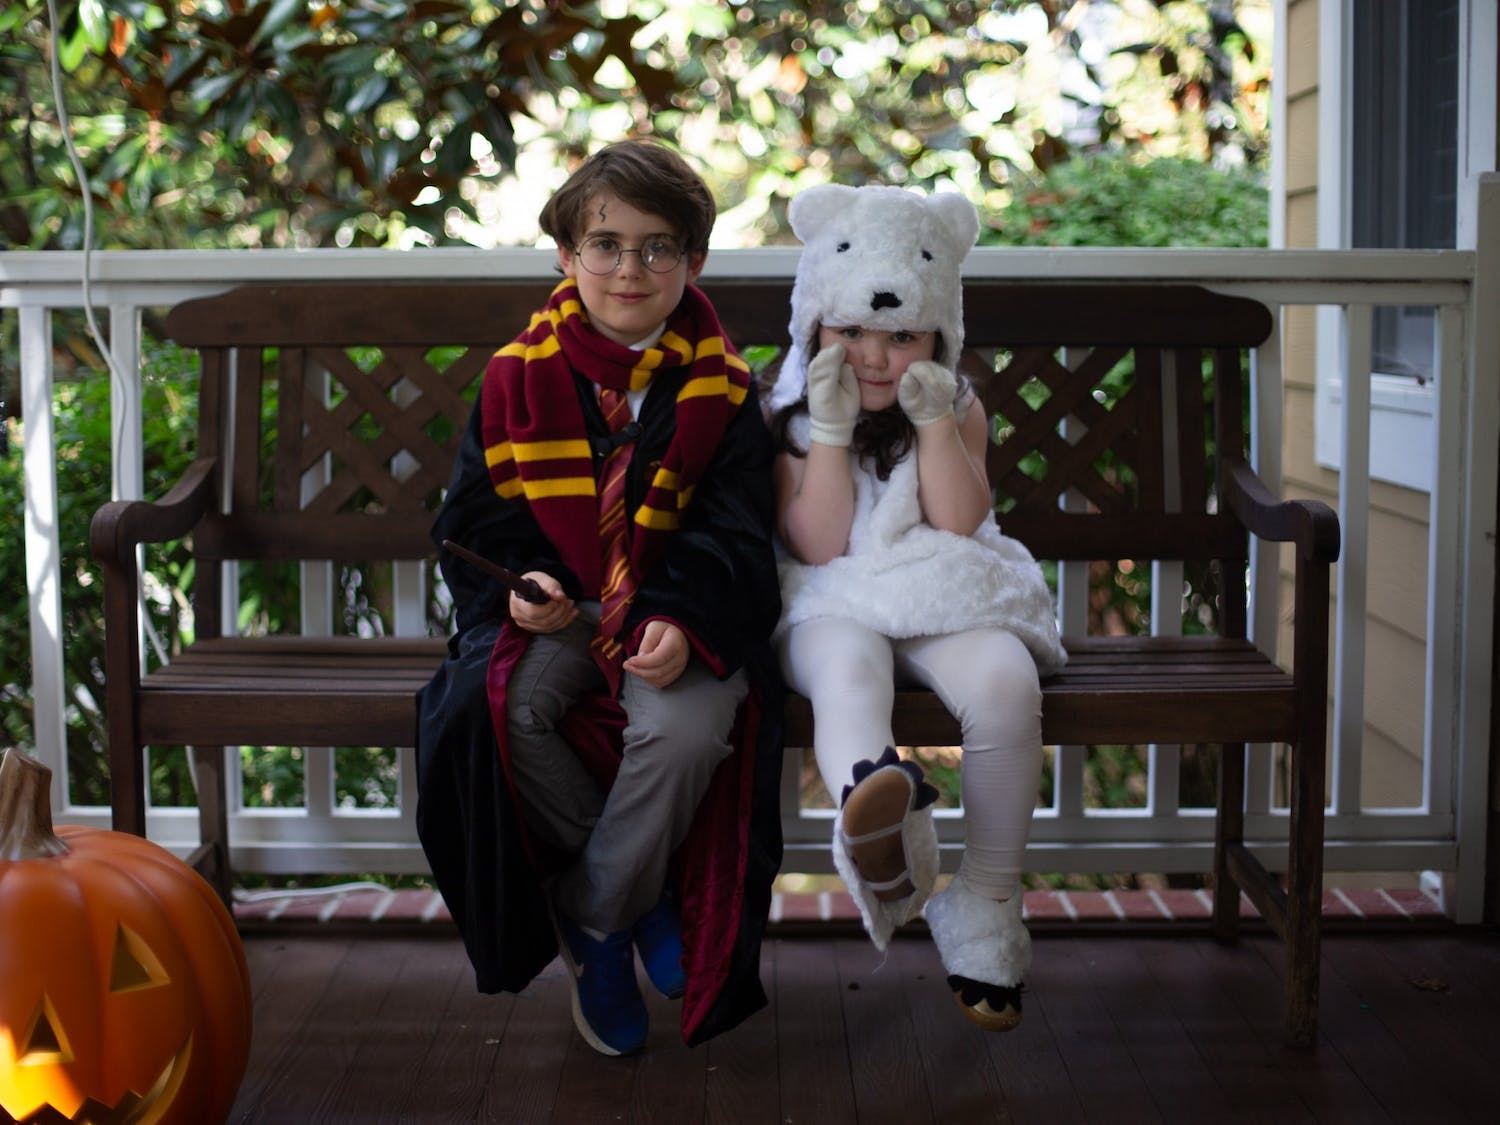 Blake, 7, and Lila, 4, pose for a portrait on their front porch. Blake is dressed as Harry Potter and Lila is dressed as a polar bear.